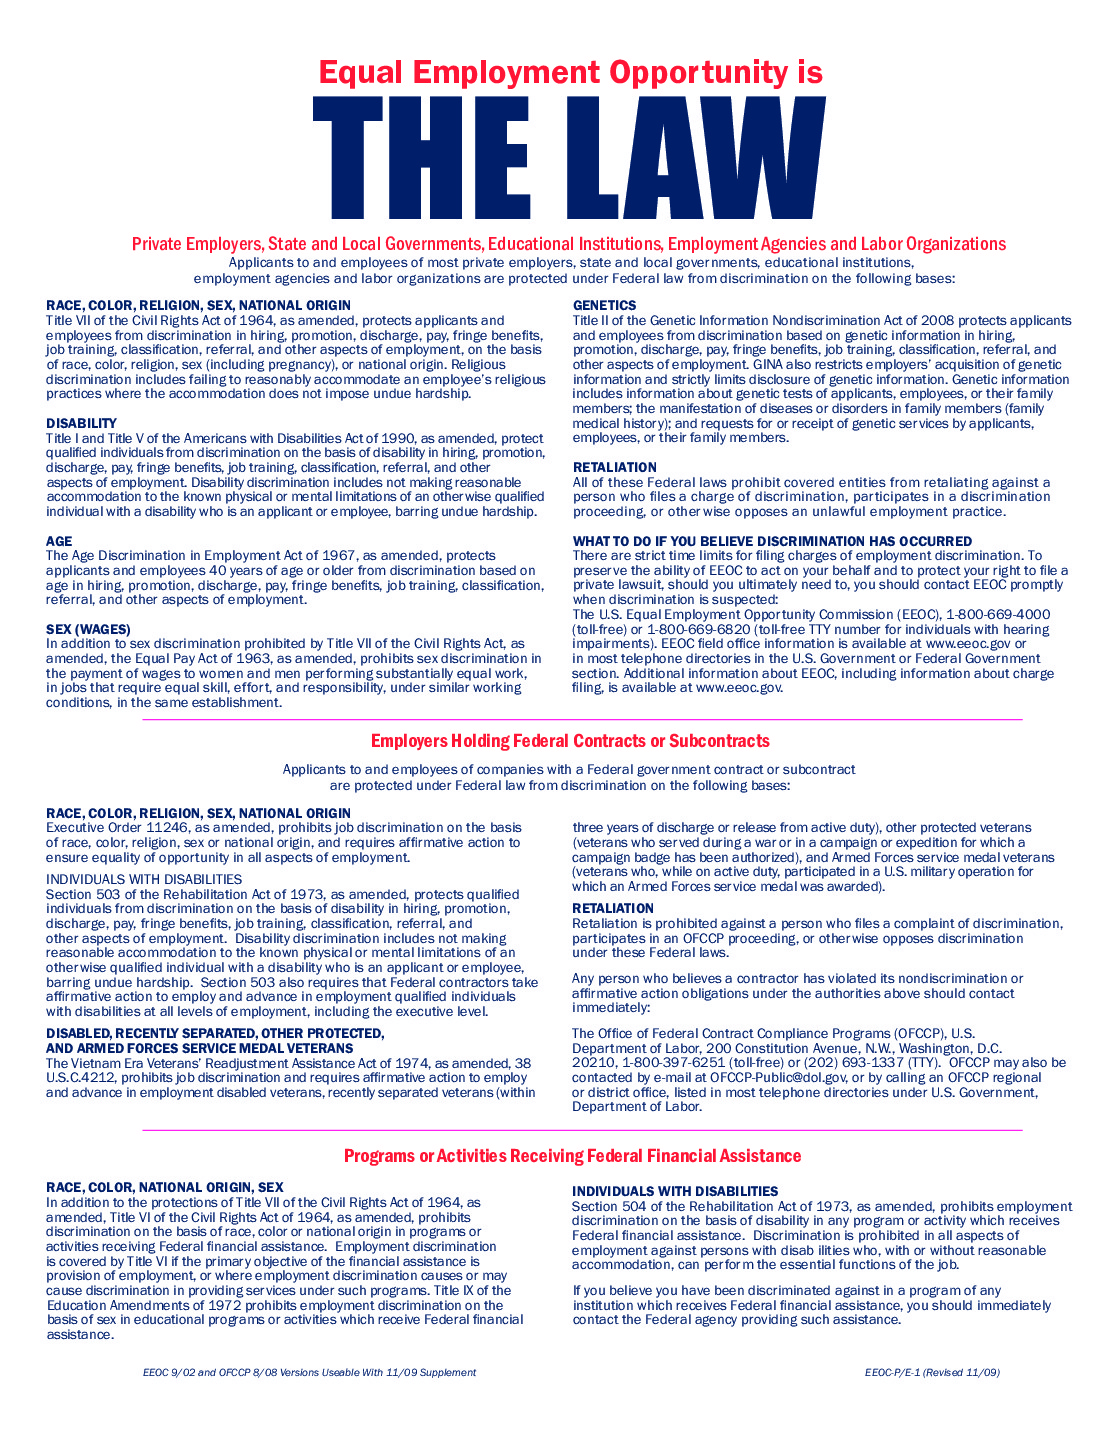 idaho required posters labor law poster